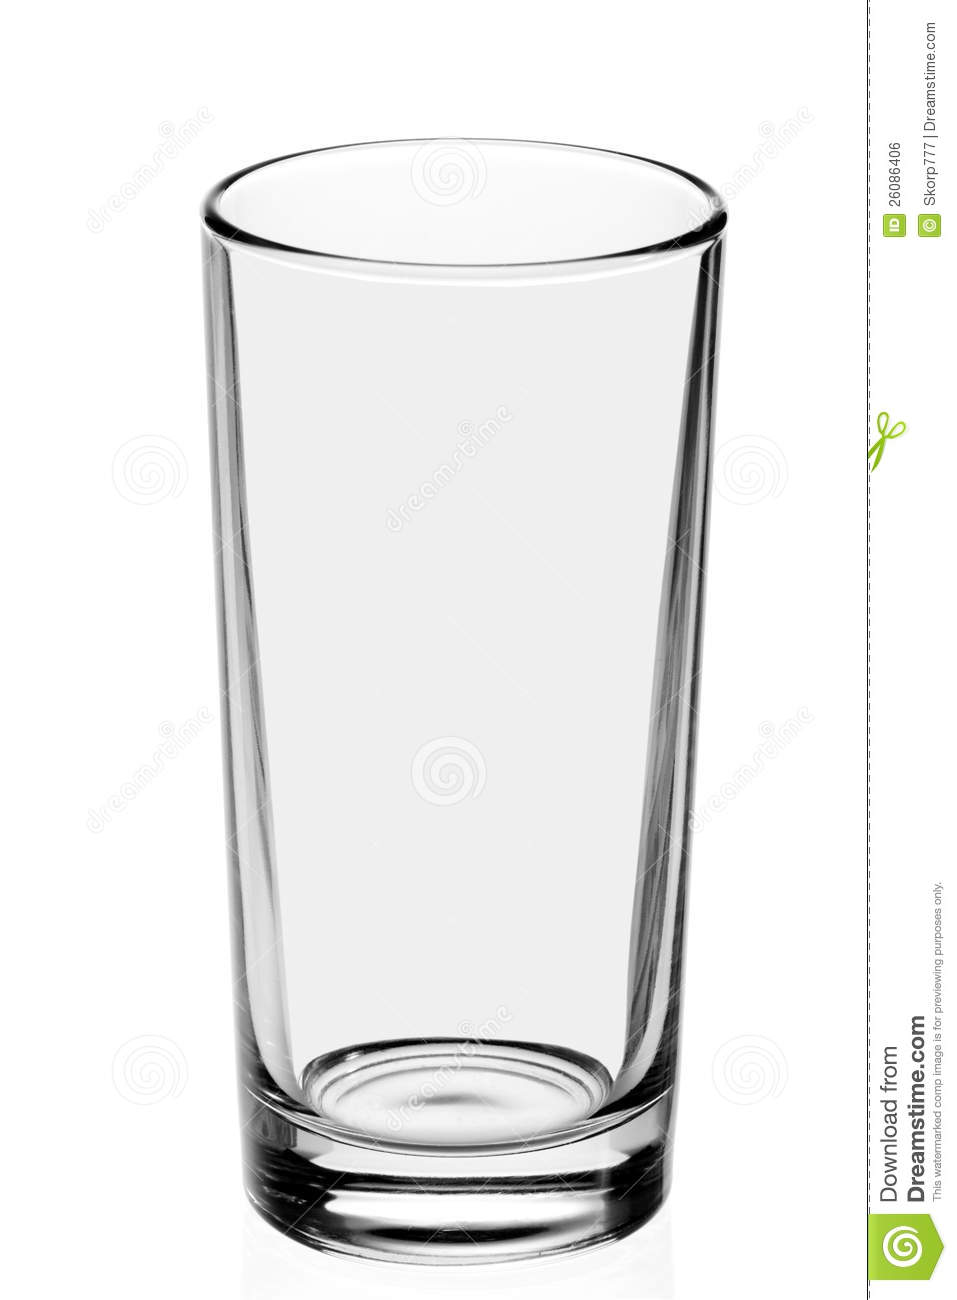 Https Www Dreamstime Com Royalty Free Stock Image Empty Glass White Background Image26086406